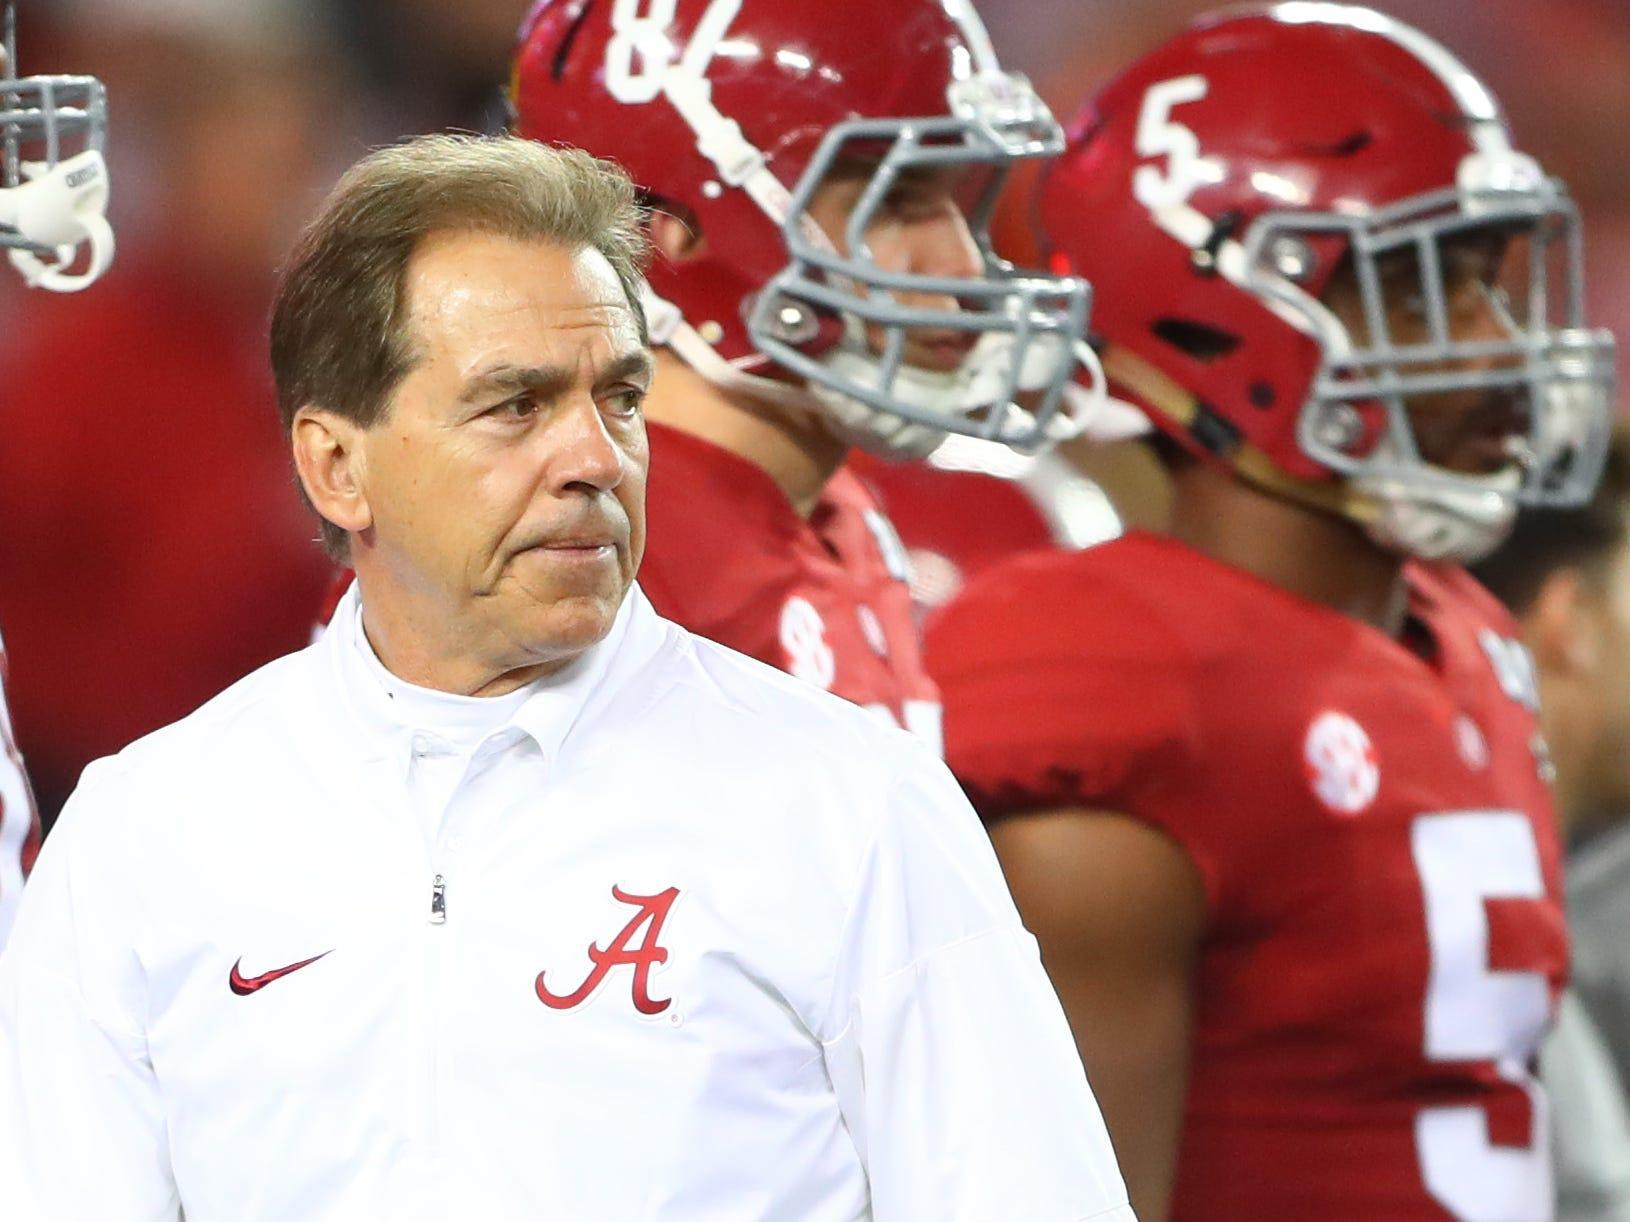 Alabama commissioned a private jet to fly Nick Saban's snot across the state for COVID-19 testing, enabling the famed coach to rejoin his Crimson Tide in time for kickoff